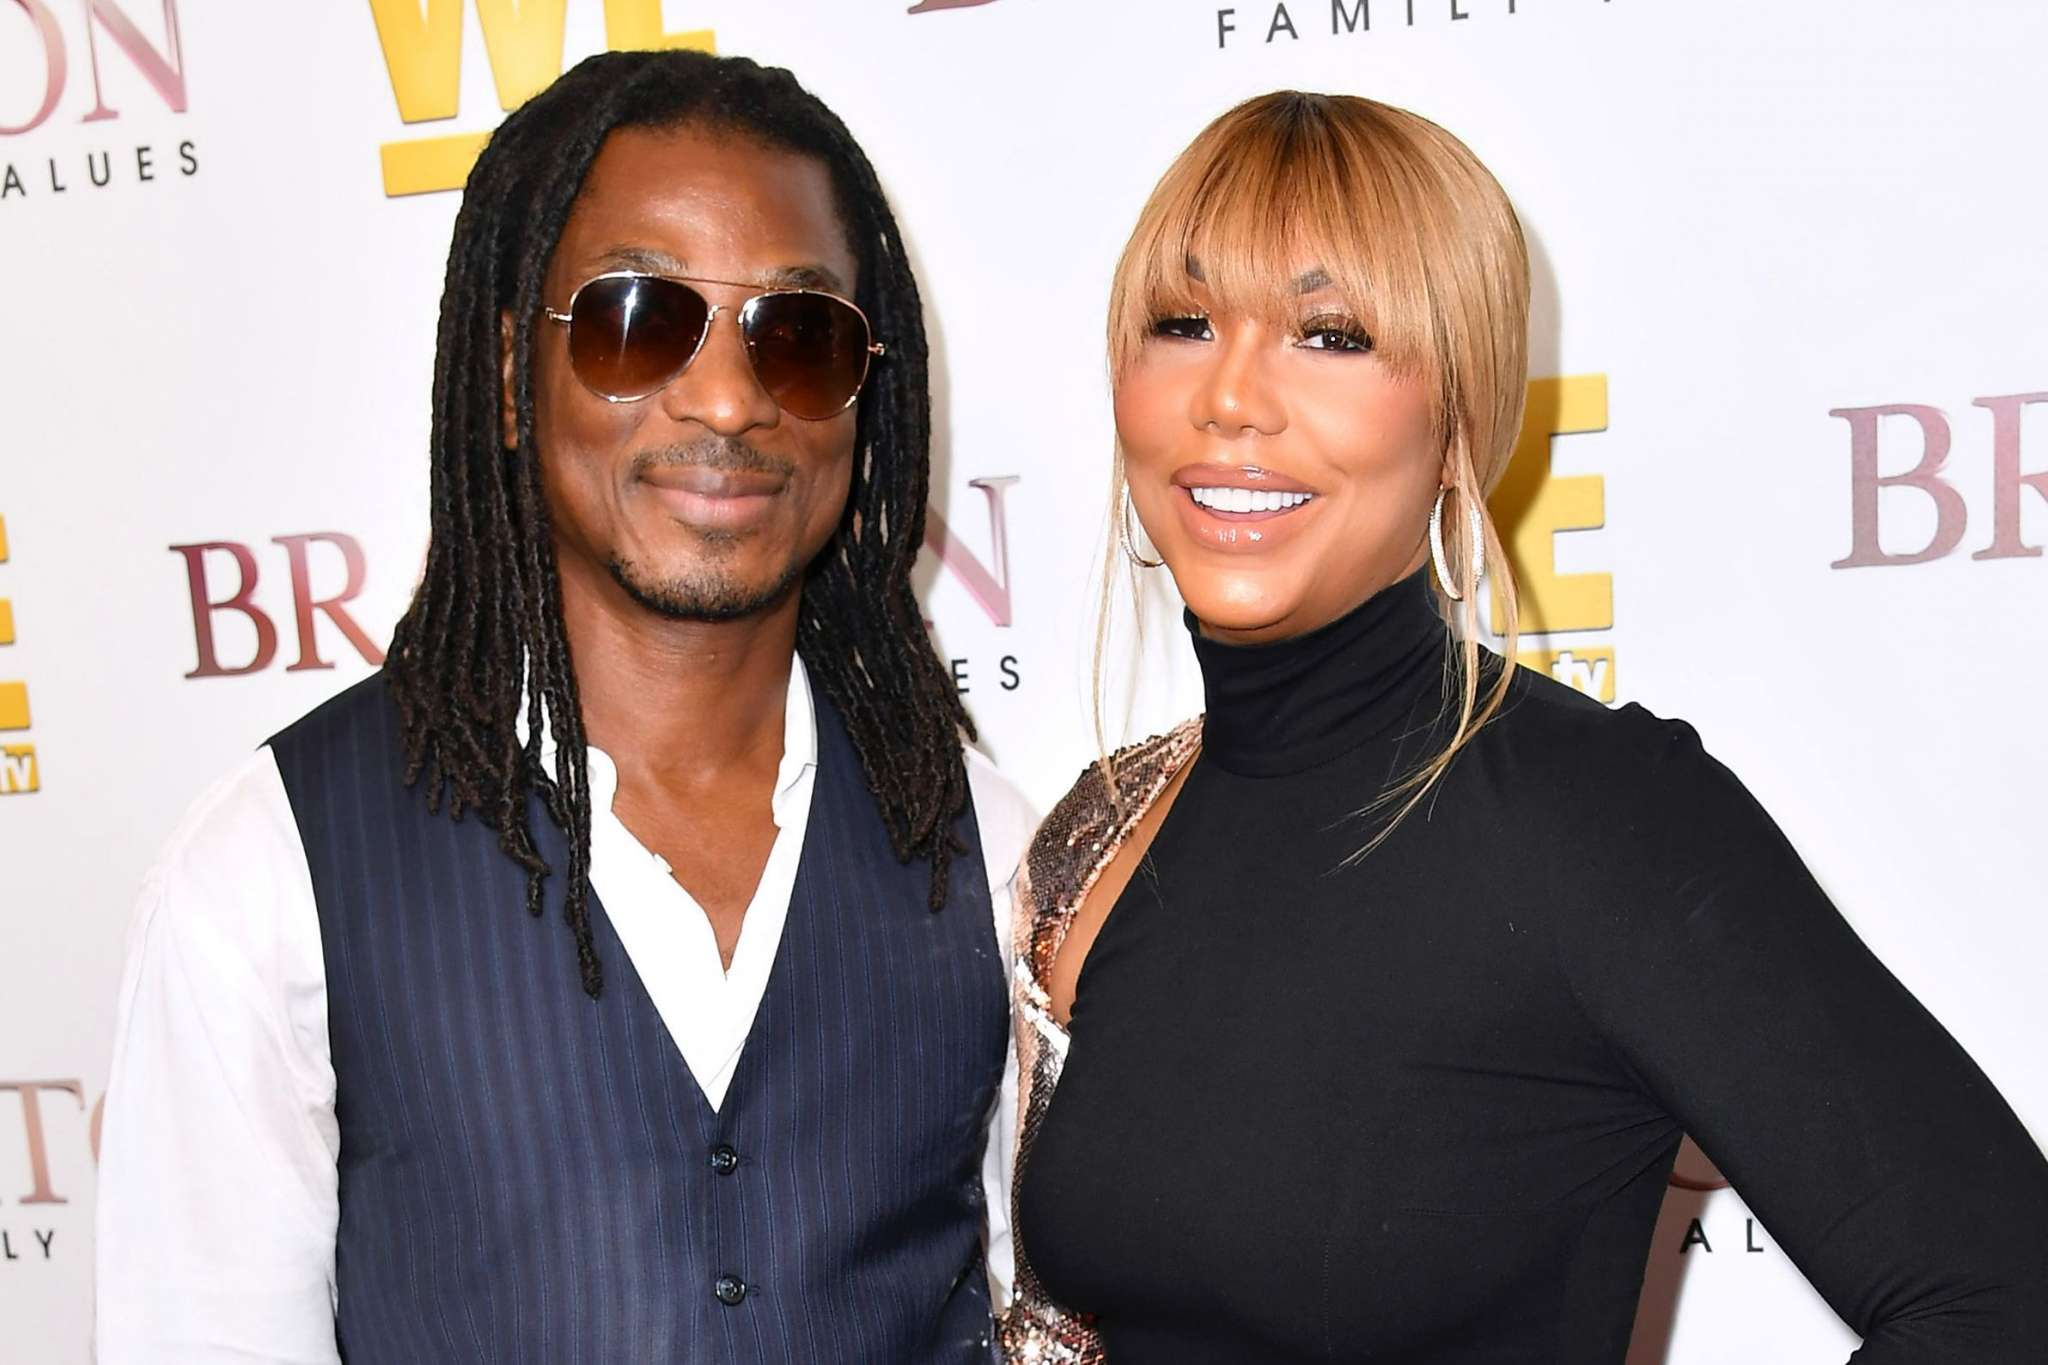 Some Of Tamar Braxton's Fans Are Not Really Here For Her New Boyfriend - A Lot Of People Are Saying They Liked Vincent Herbert Better